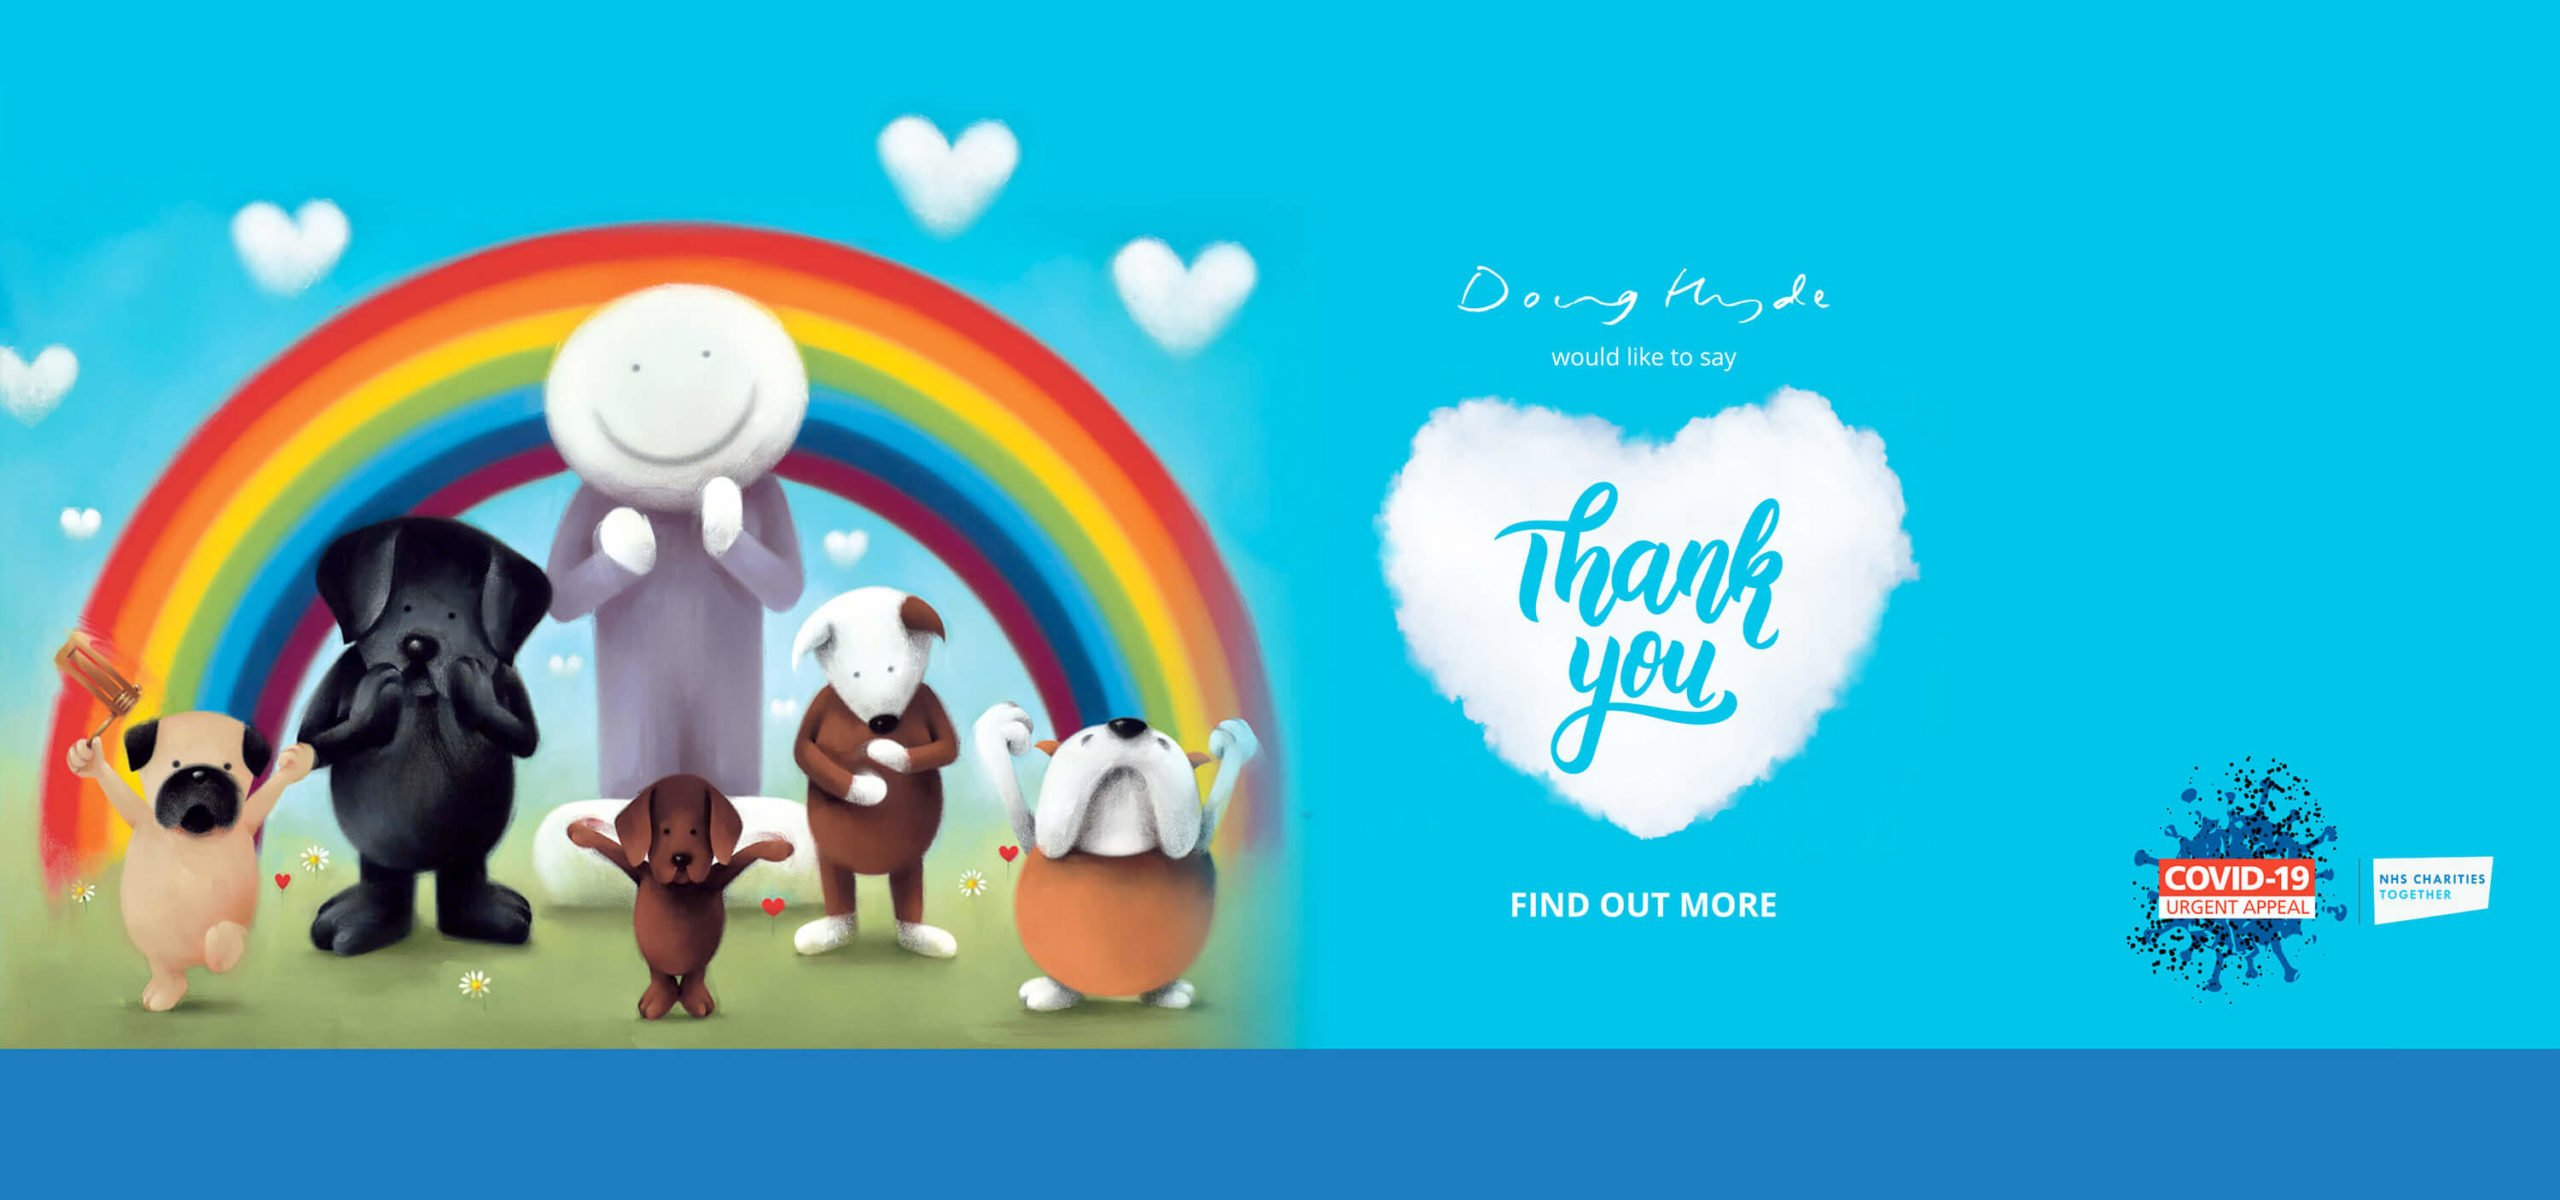 Thank you – The latest release by Doug Hyde